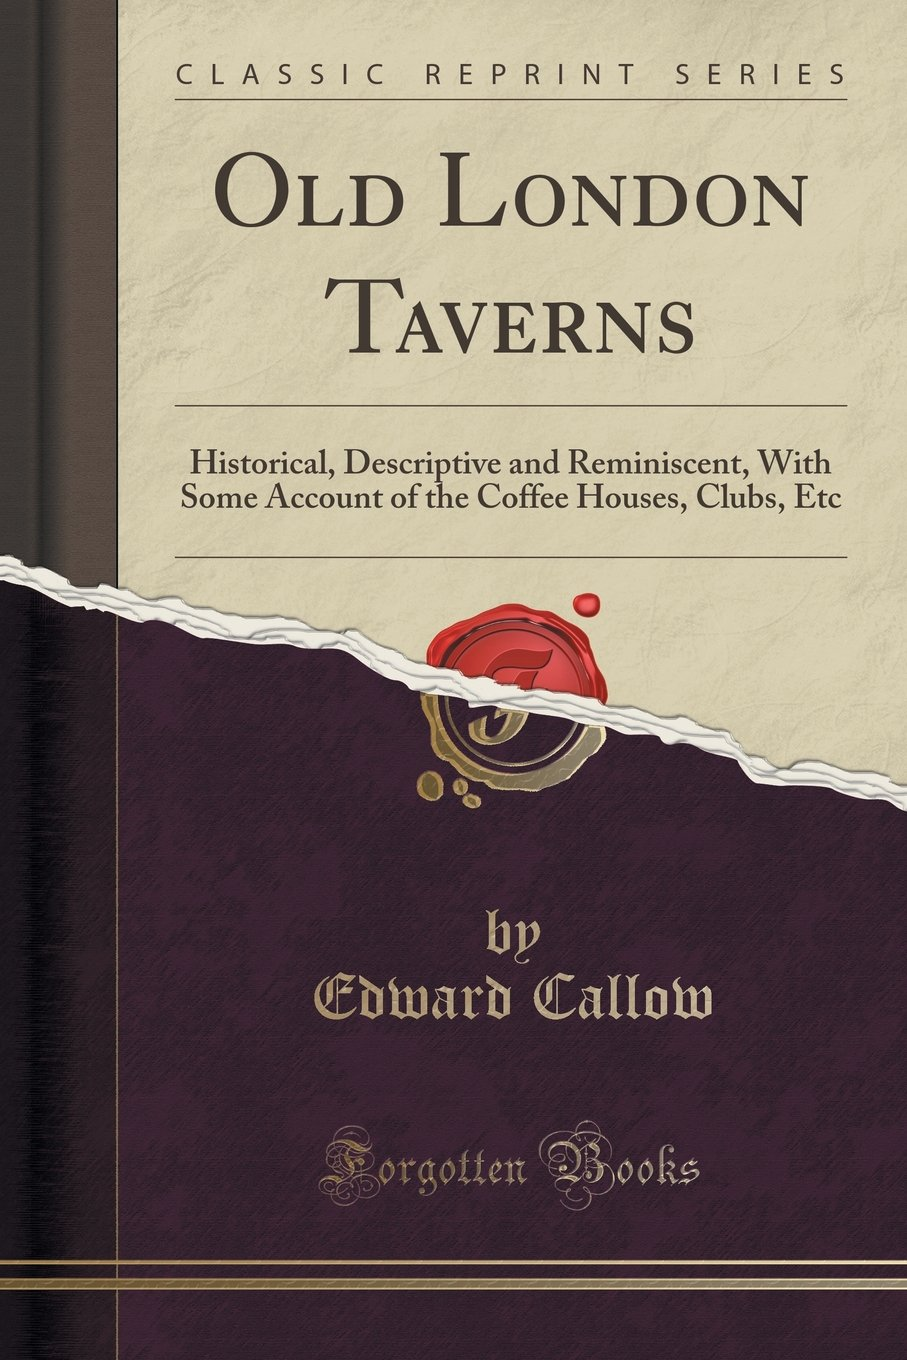 Old London Taverns: Historical, Descriptive and Reminiscent, With Some Account of the Coffee Houses, Clubs, Etc (Classic Reprint) pdf epub